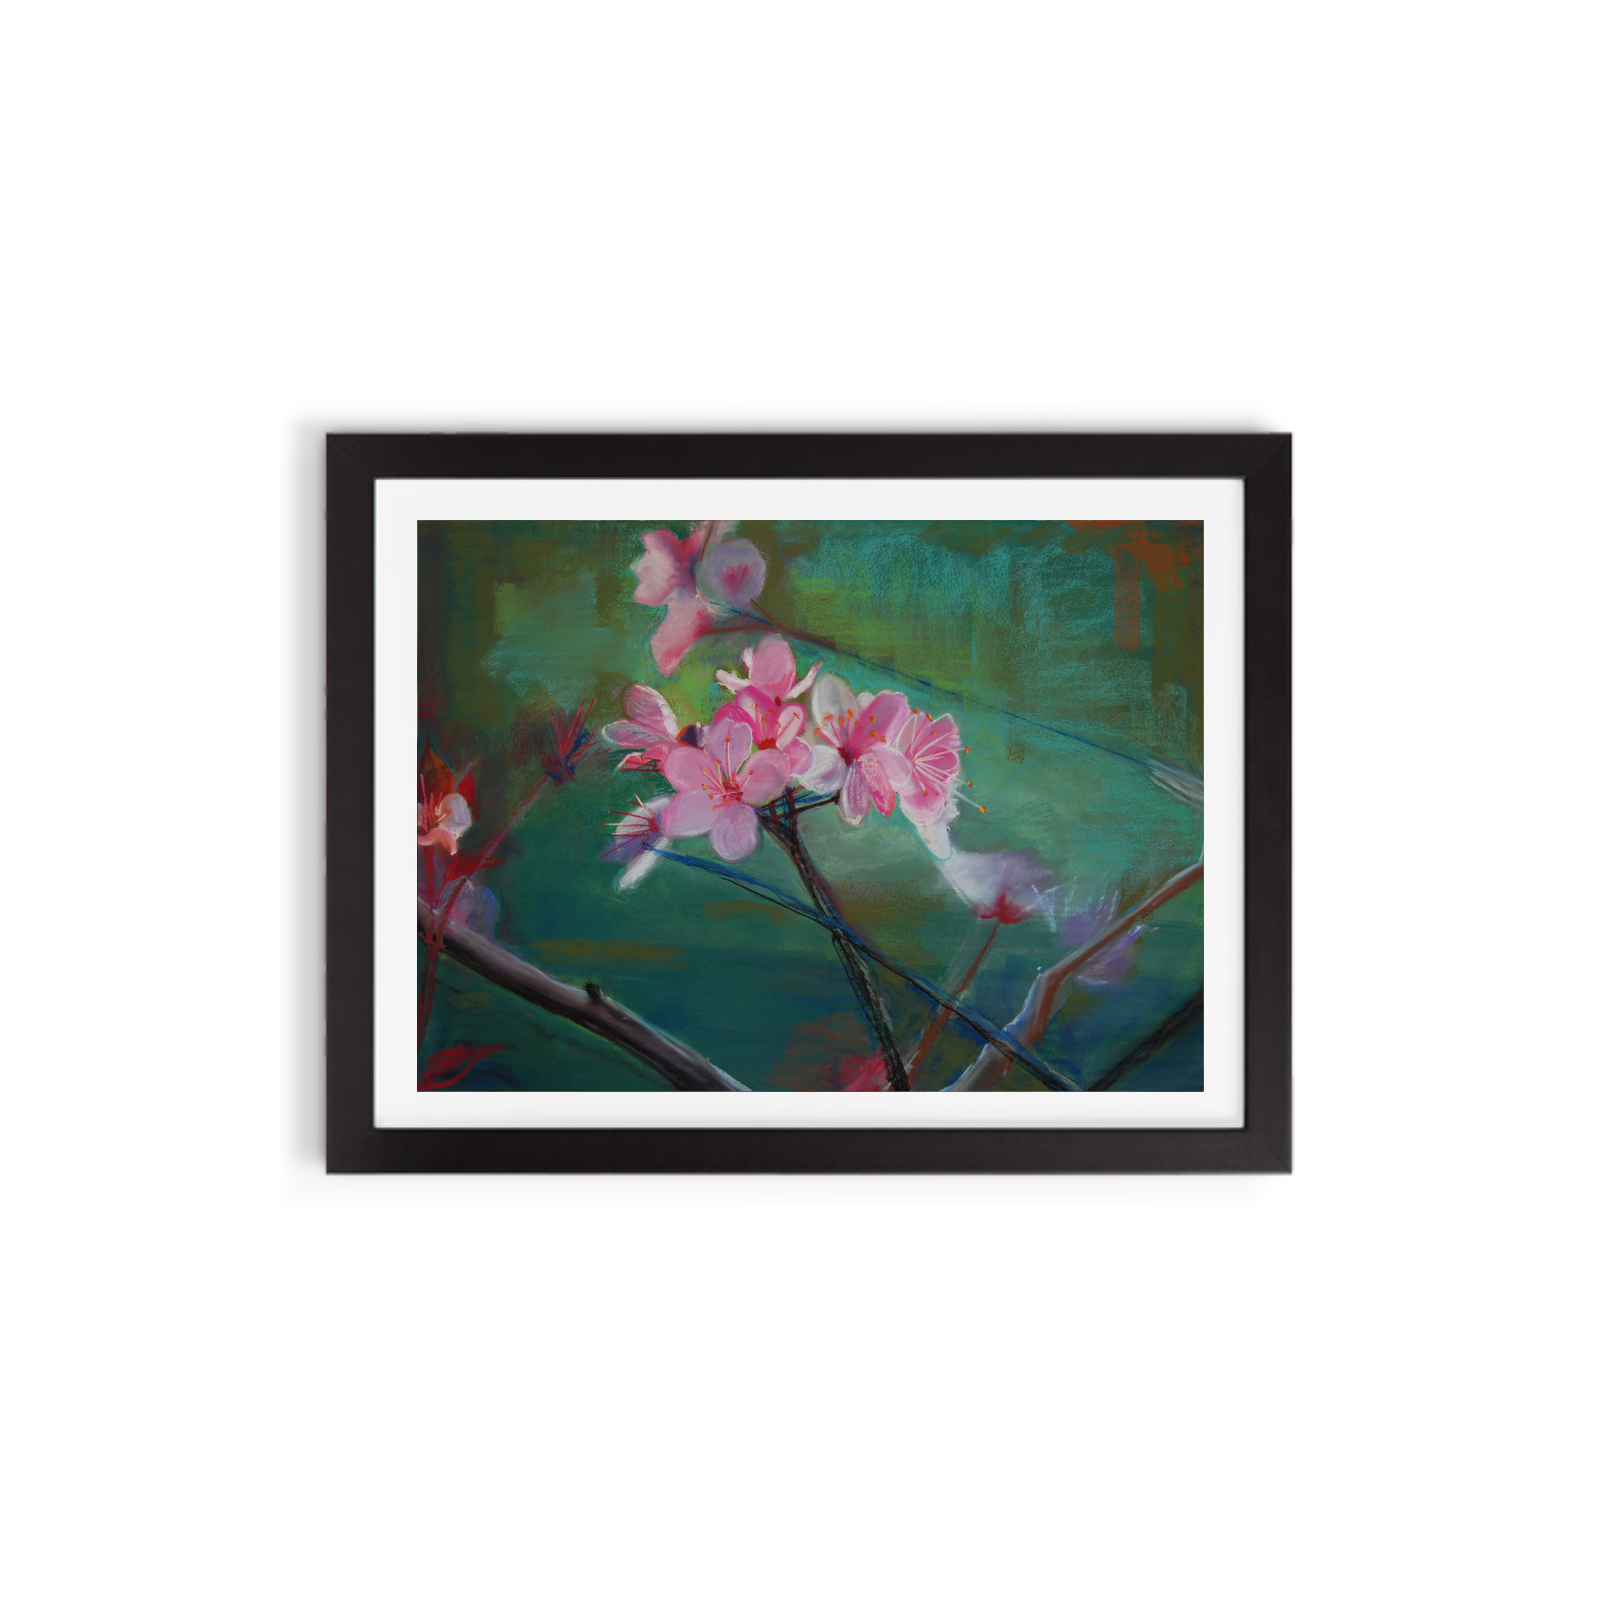 Heidi Hardin - Plum Blossoms/Valentine's Day 2010 #2 - 1:25 pm – One Blossom in Dark Grey Background